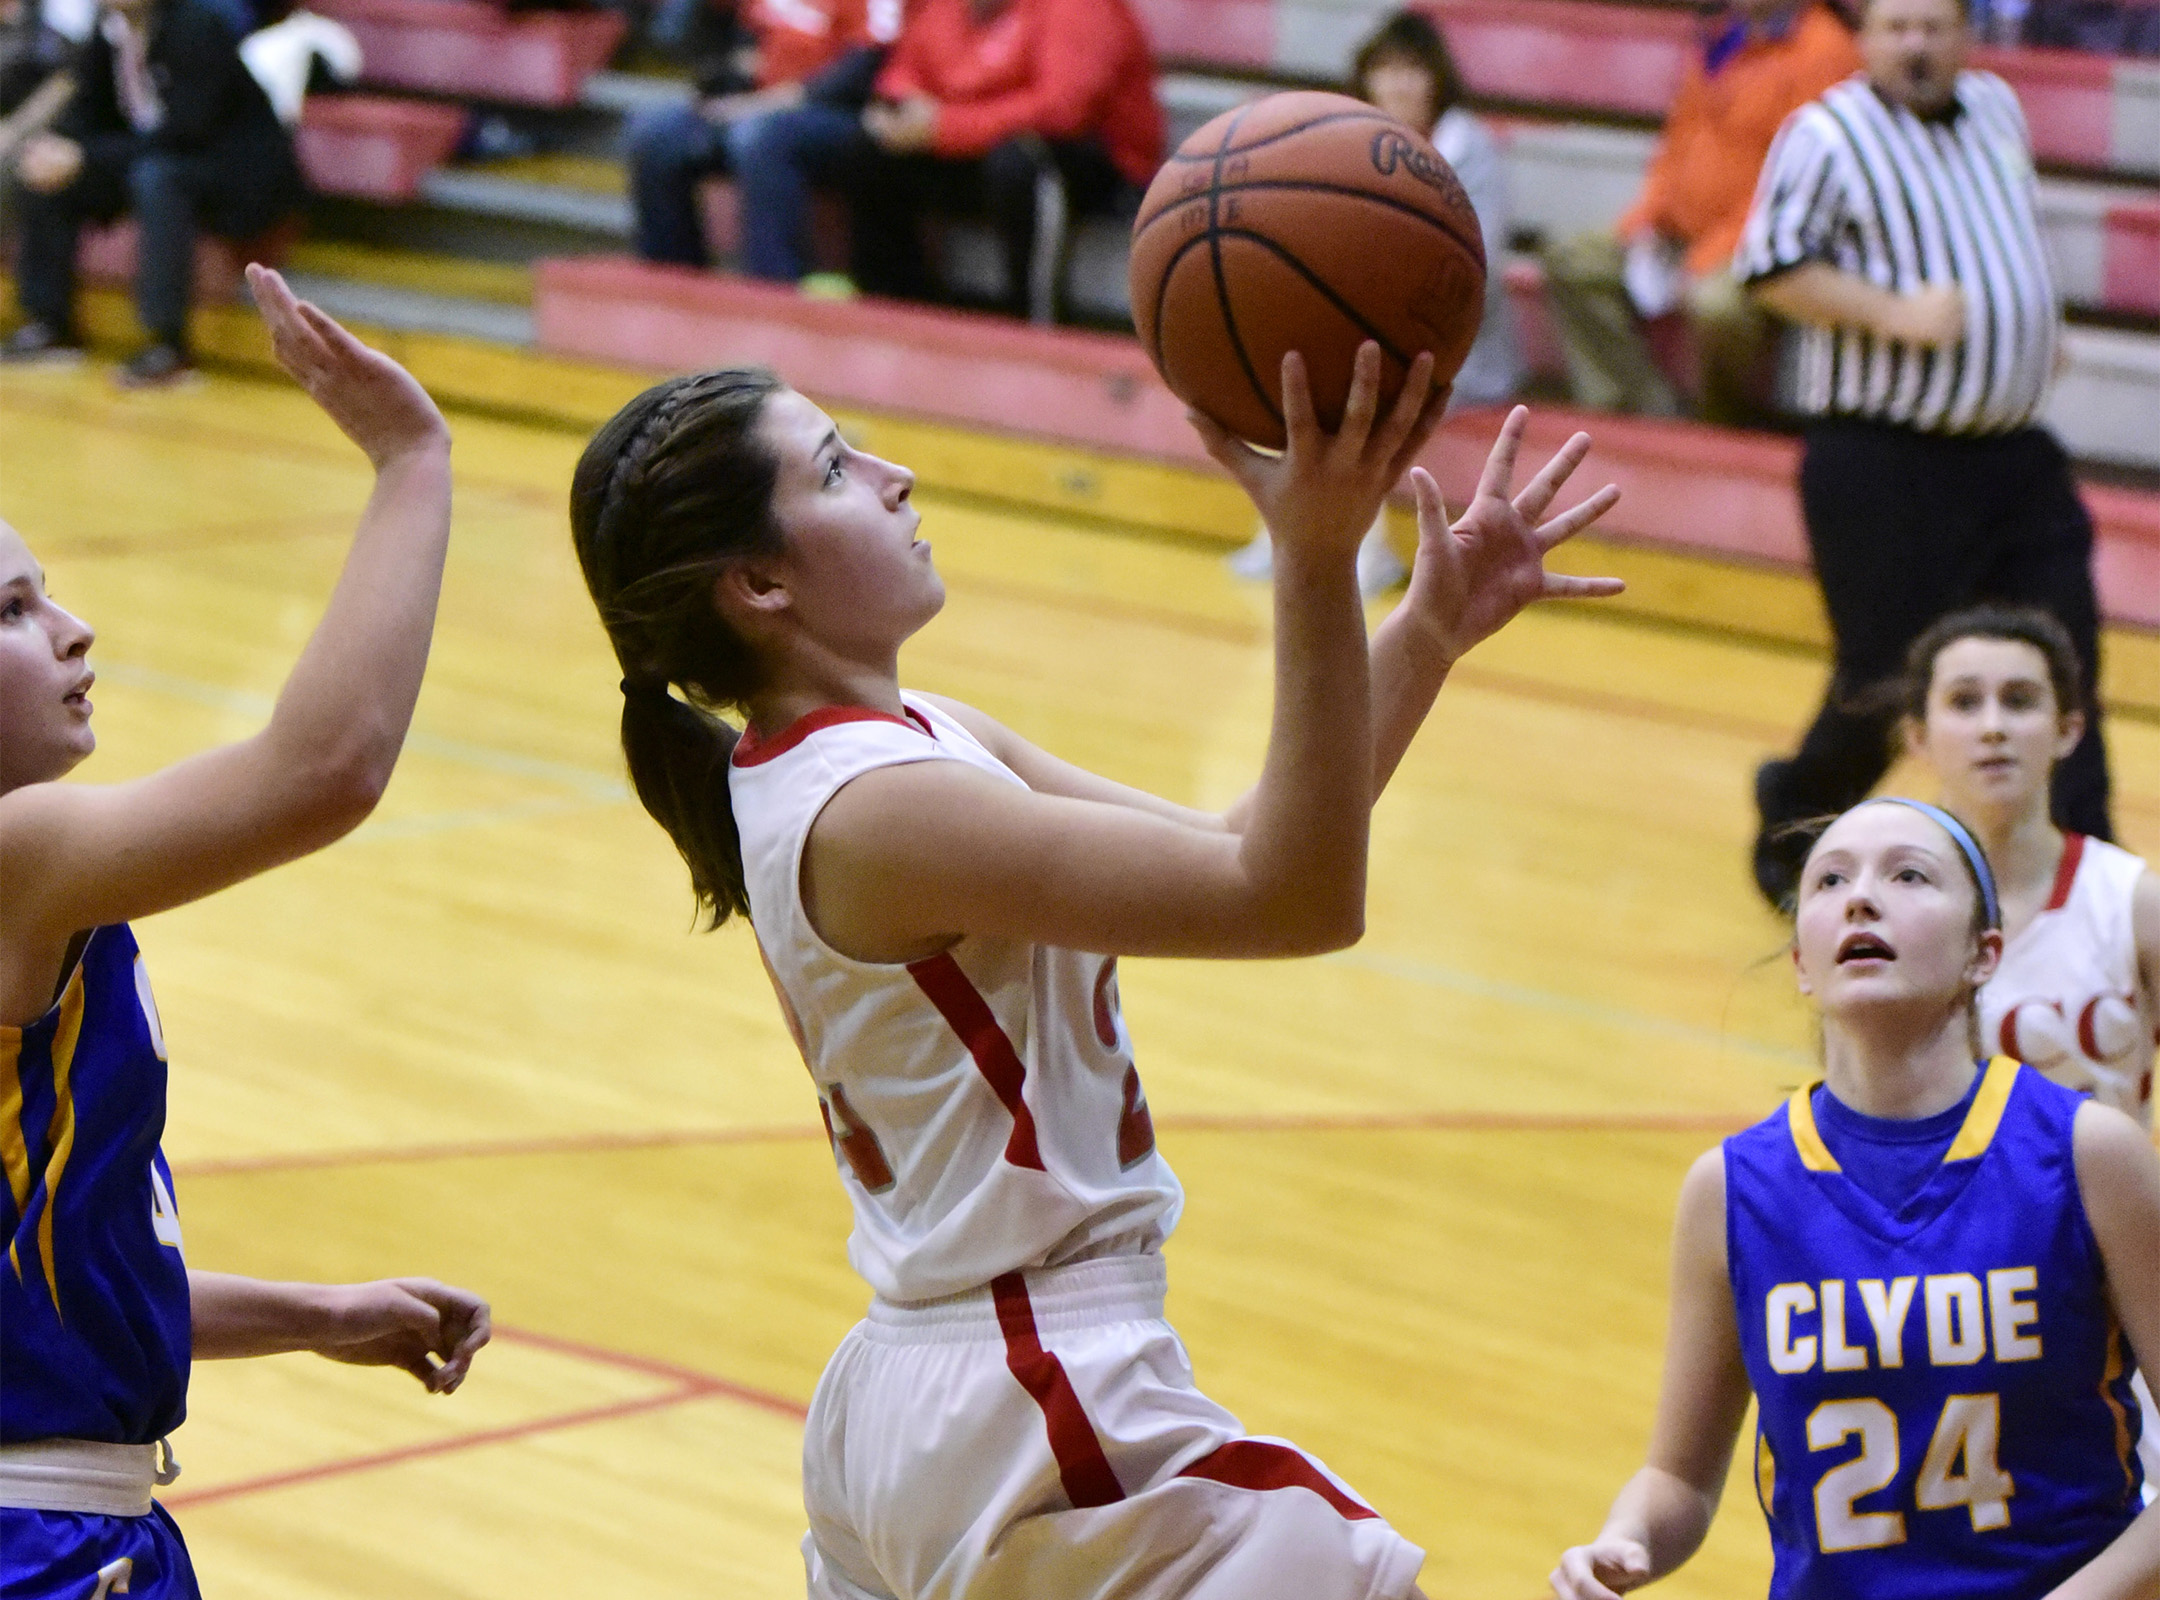 St. Joe's Miranda Wammes takes it to the basket against Clyde on Tuesday evening.